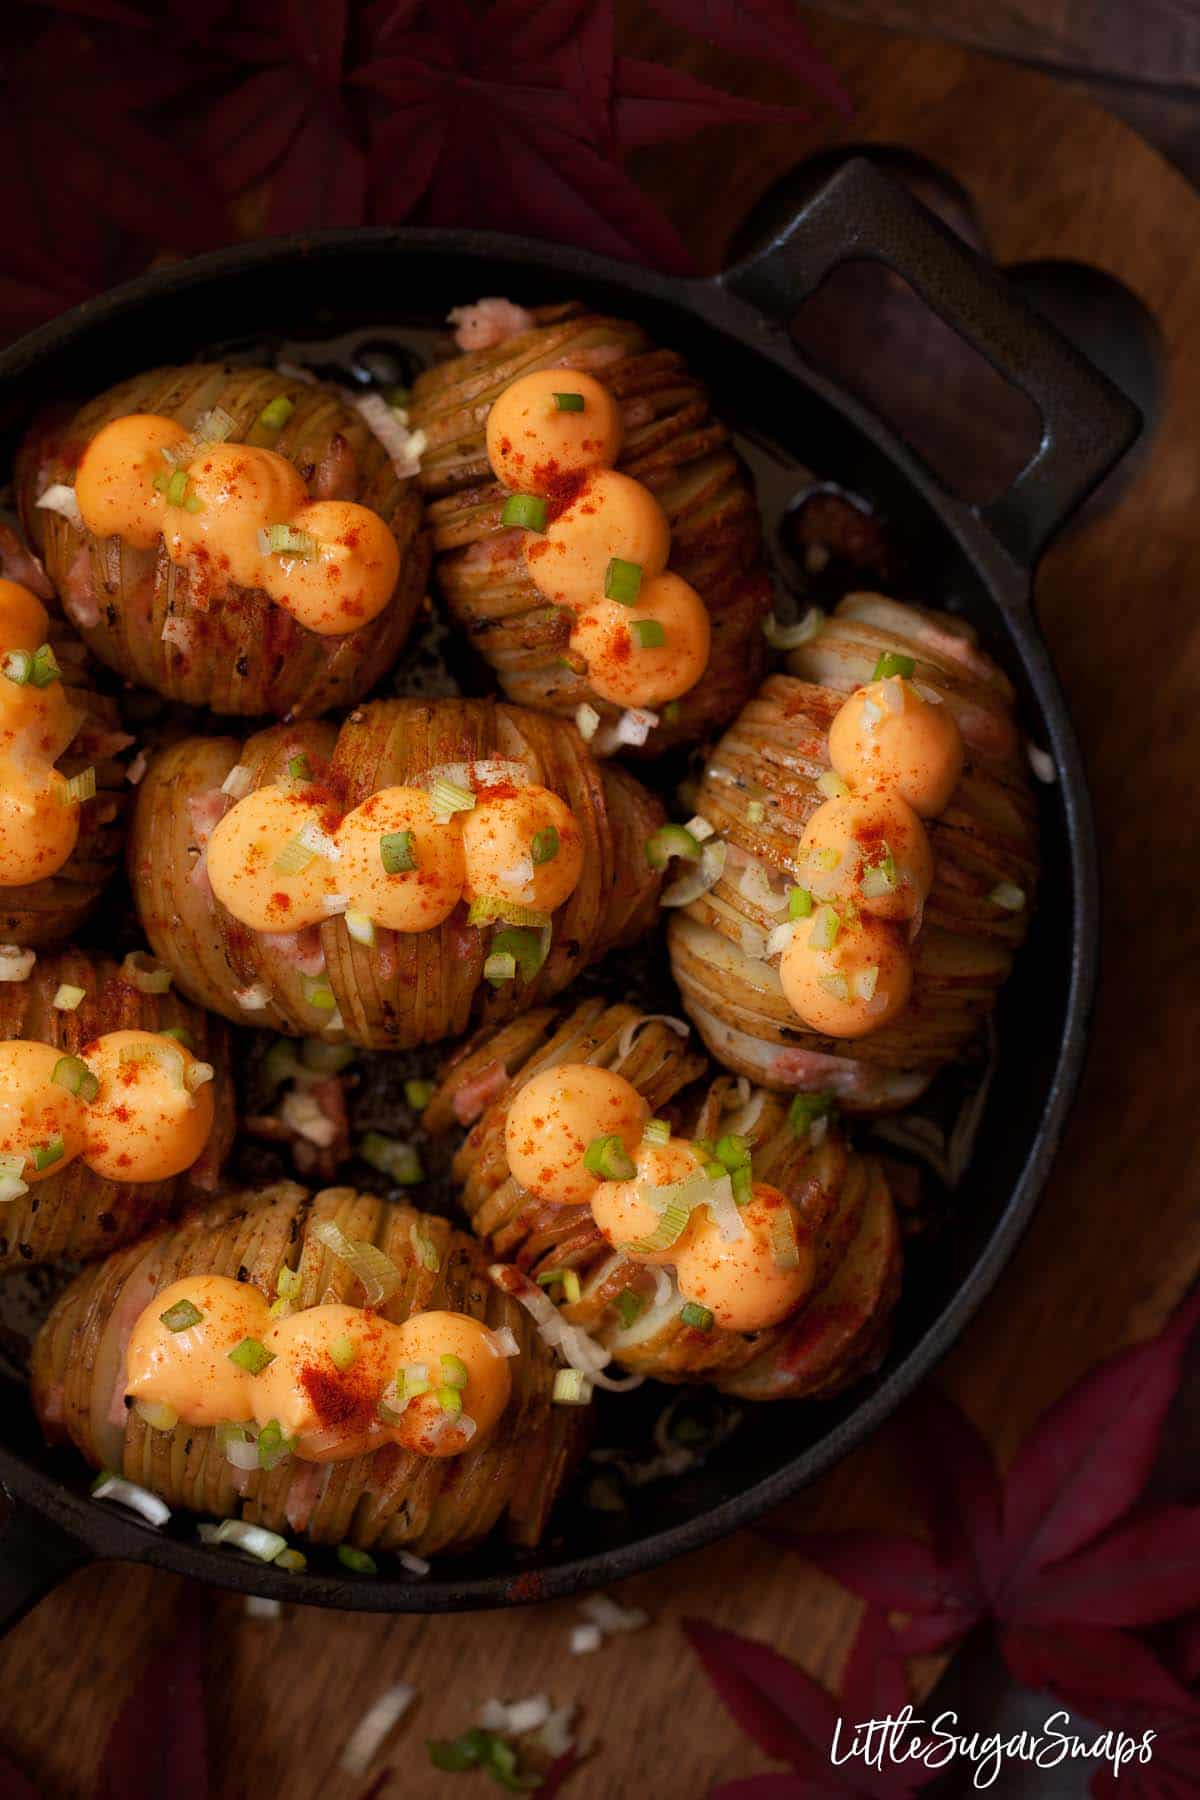 Cheesy Hasselback potatoes filled with bacon and topped with cheese spread and onion